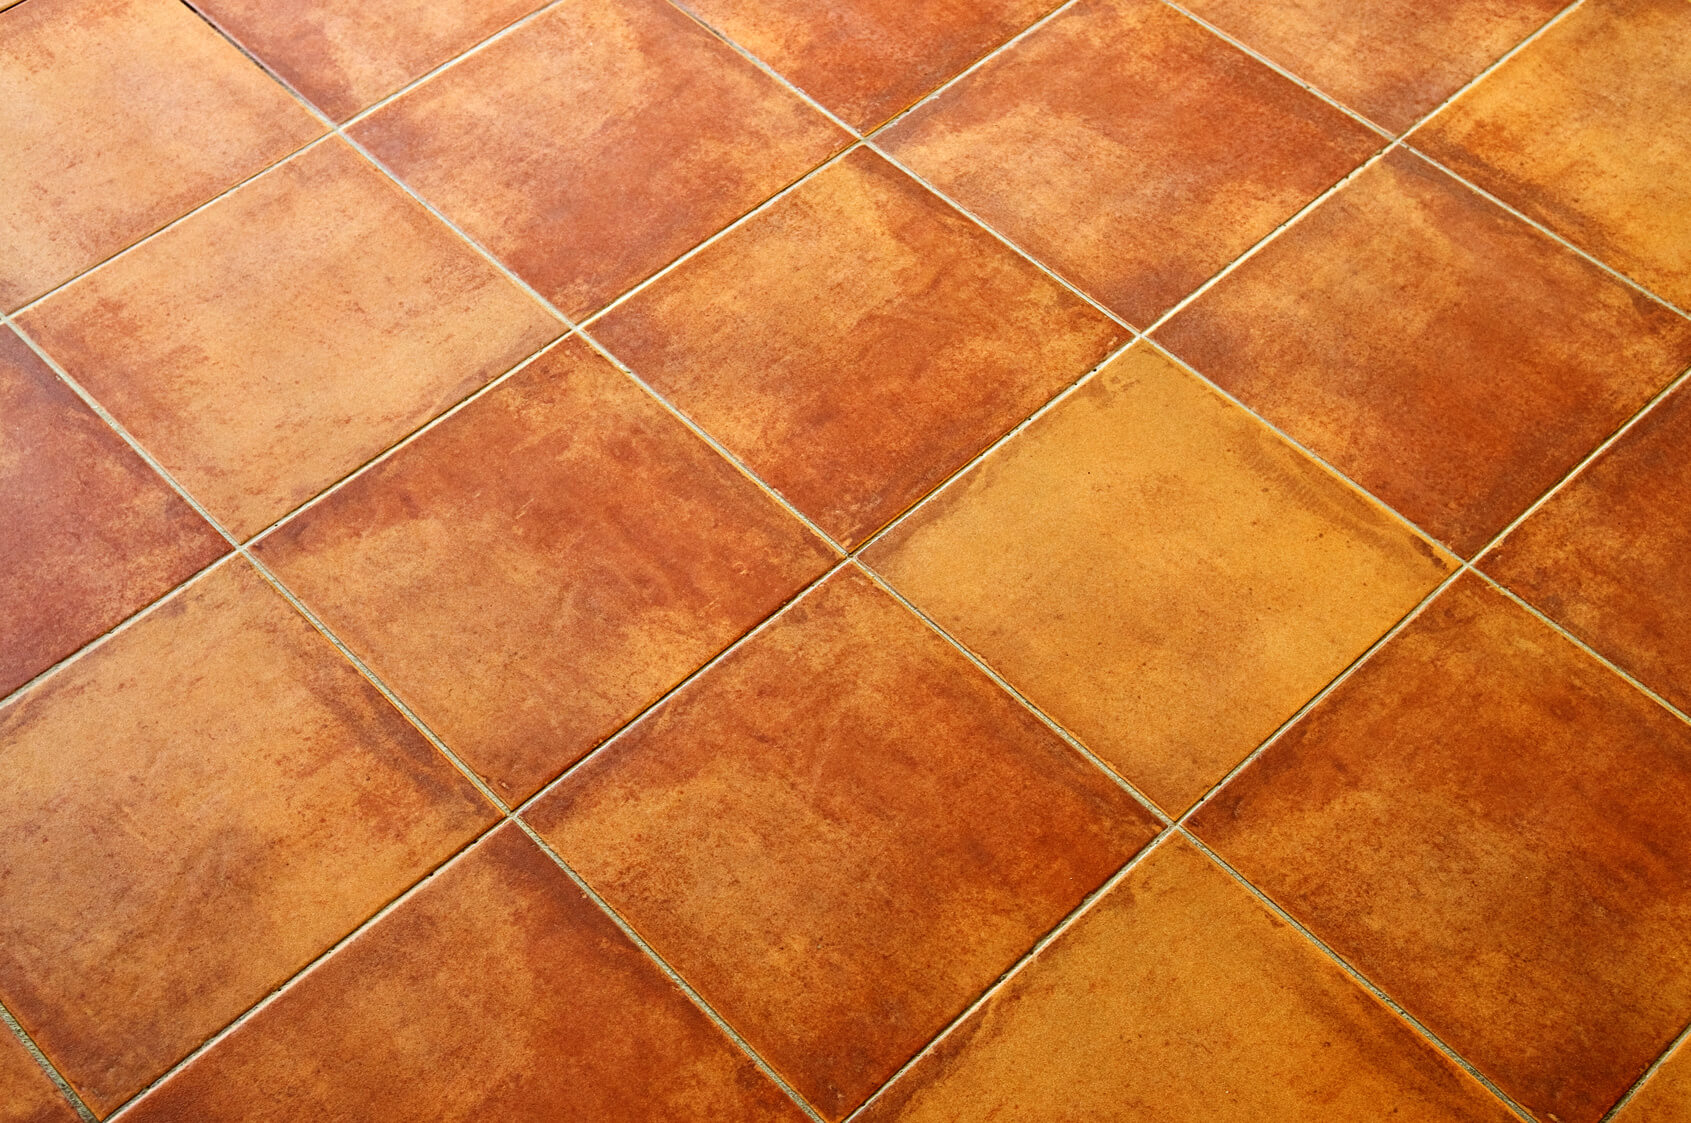 TILE GROUT CLEANING - Simple mopping leaves layers of soil on the grout, staining the grout which is why our process will extract the soil from the grout and clean the surface tile. We also provide Grout Line Sealing & Color Sealing services that make your floors looking great longer. In addition to our normal hard floor cleaning services we also provide Natural Stone Care.LEARN MORE